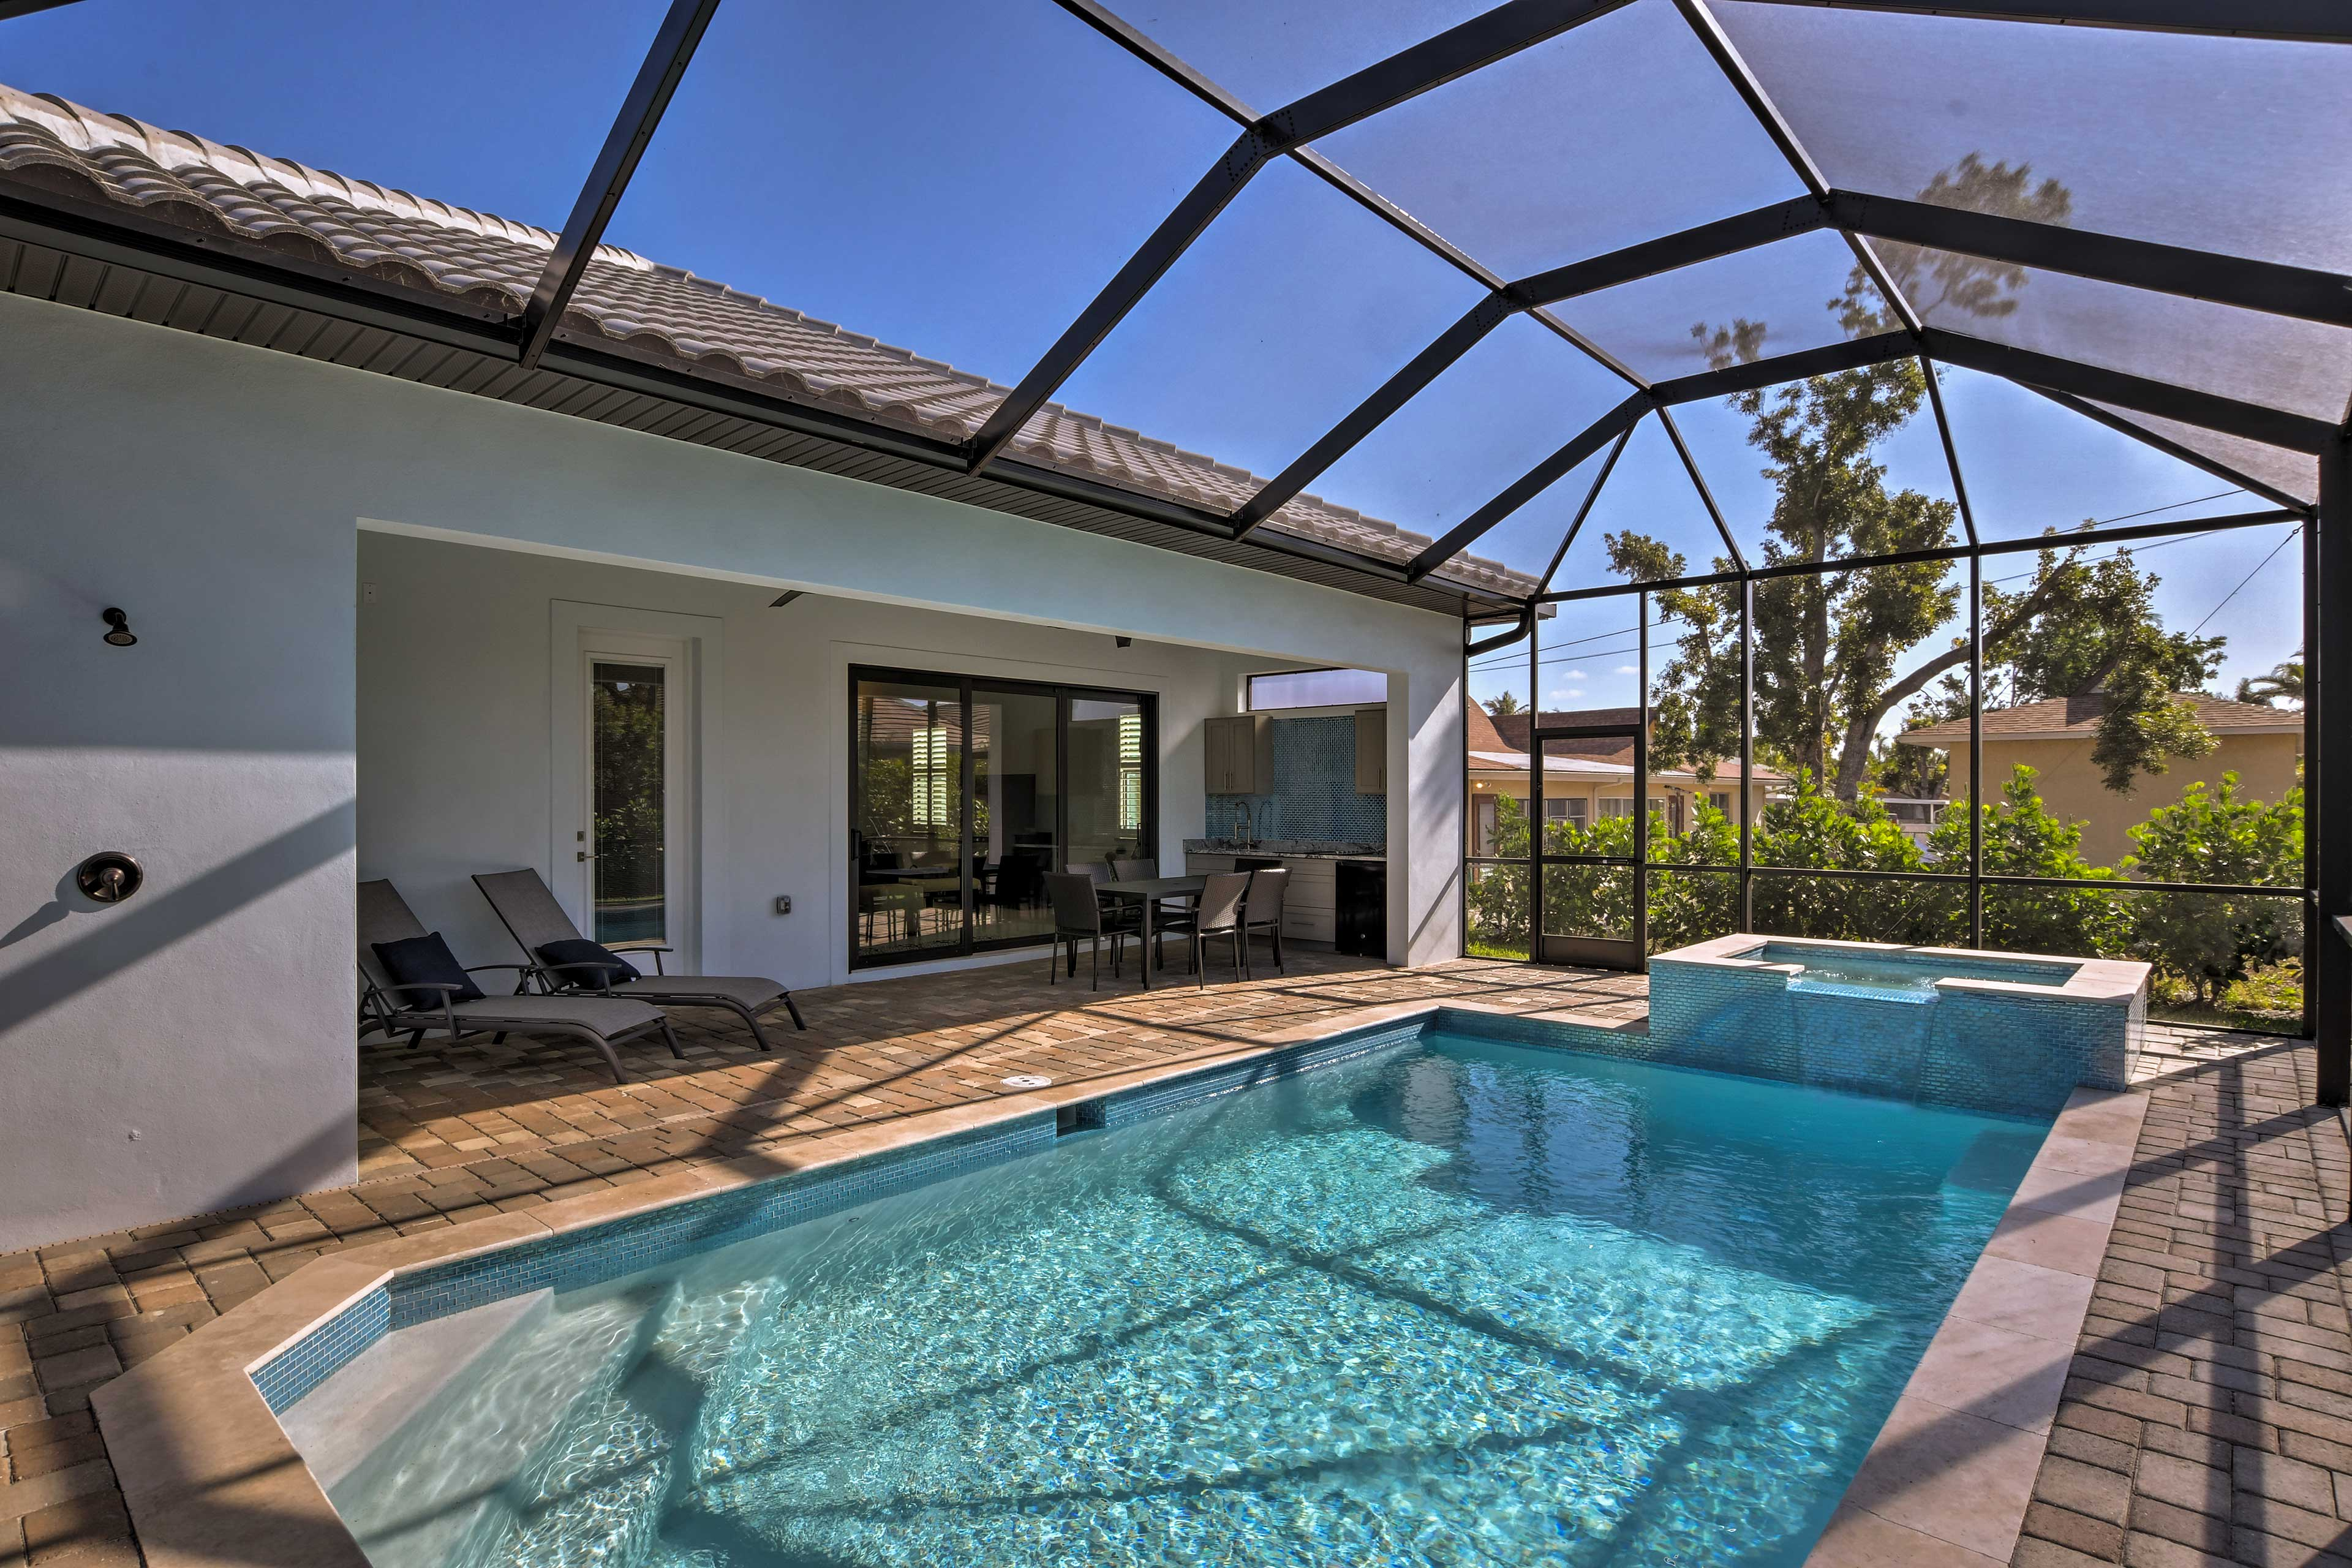 Beat the Florida heat by splashing around in the private pool!